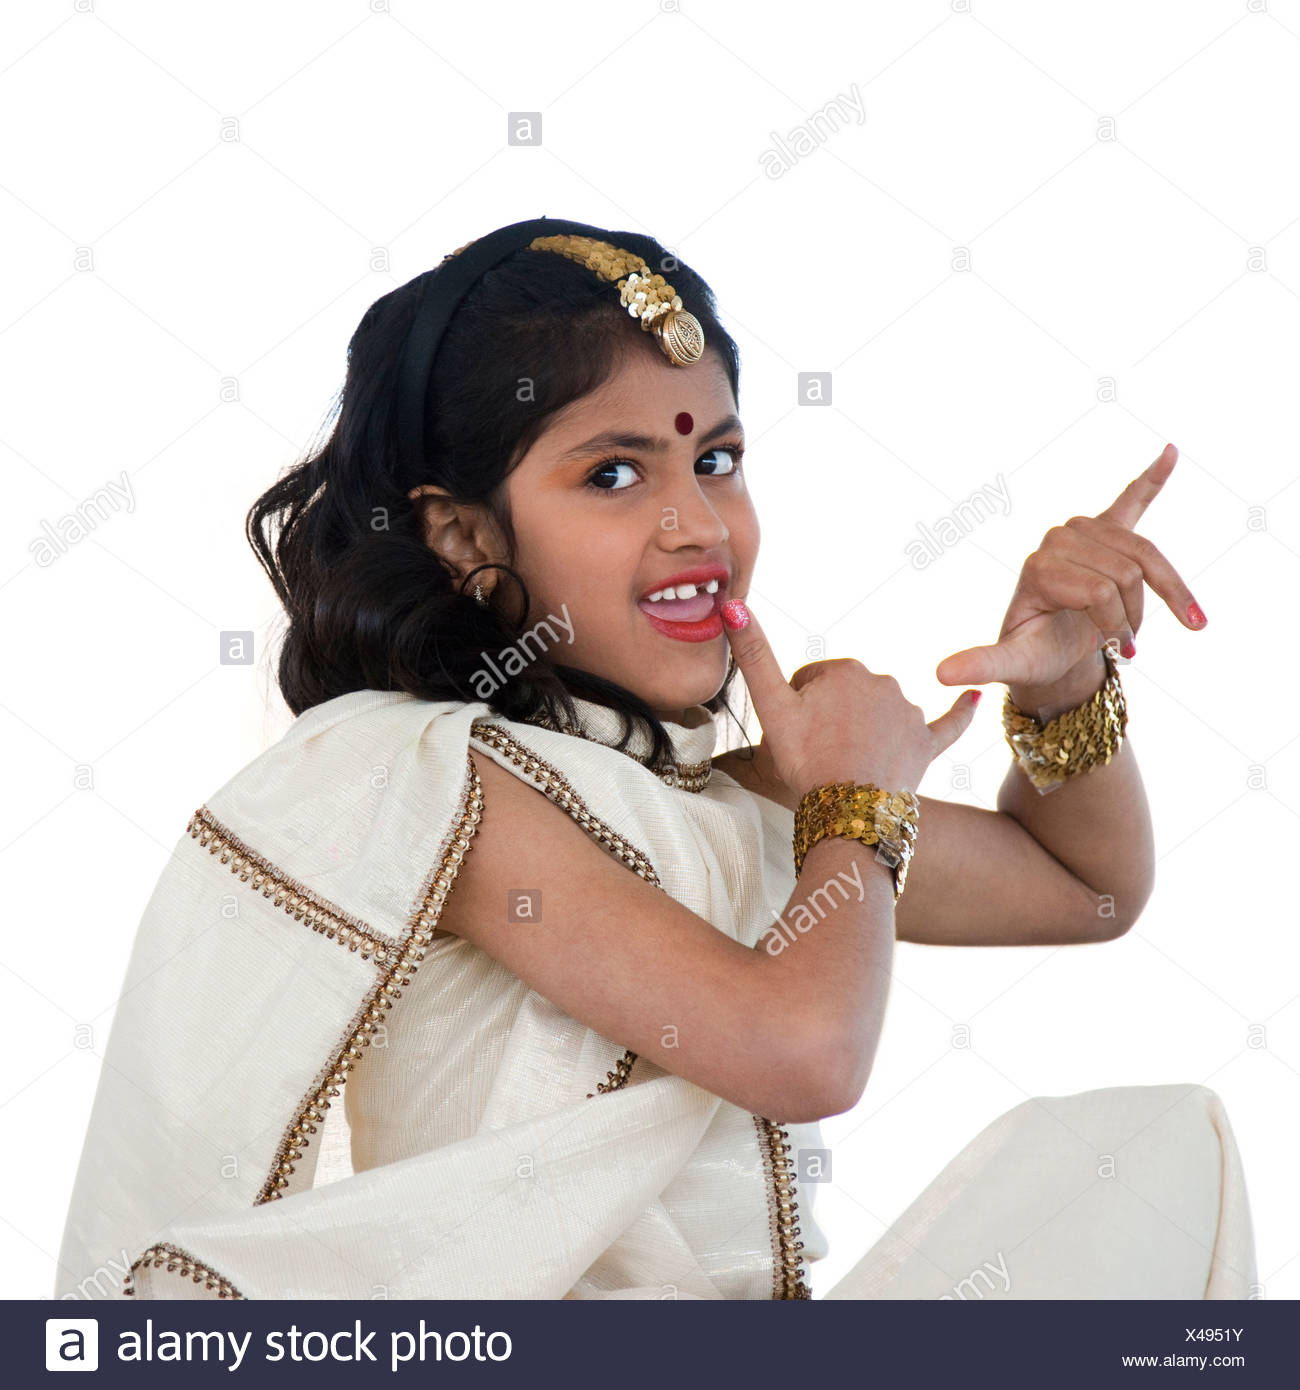 Girl (8-9) wearing traditional sari performing figures from indian traditional dance, studio shot - Stock Image